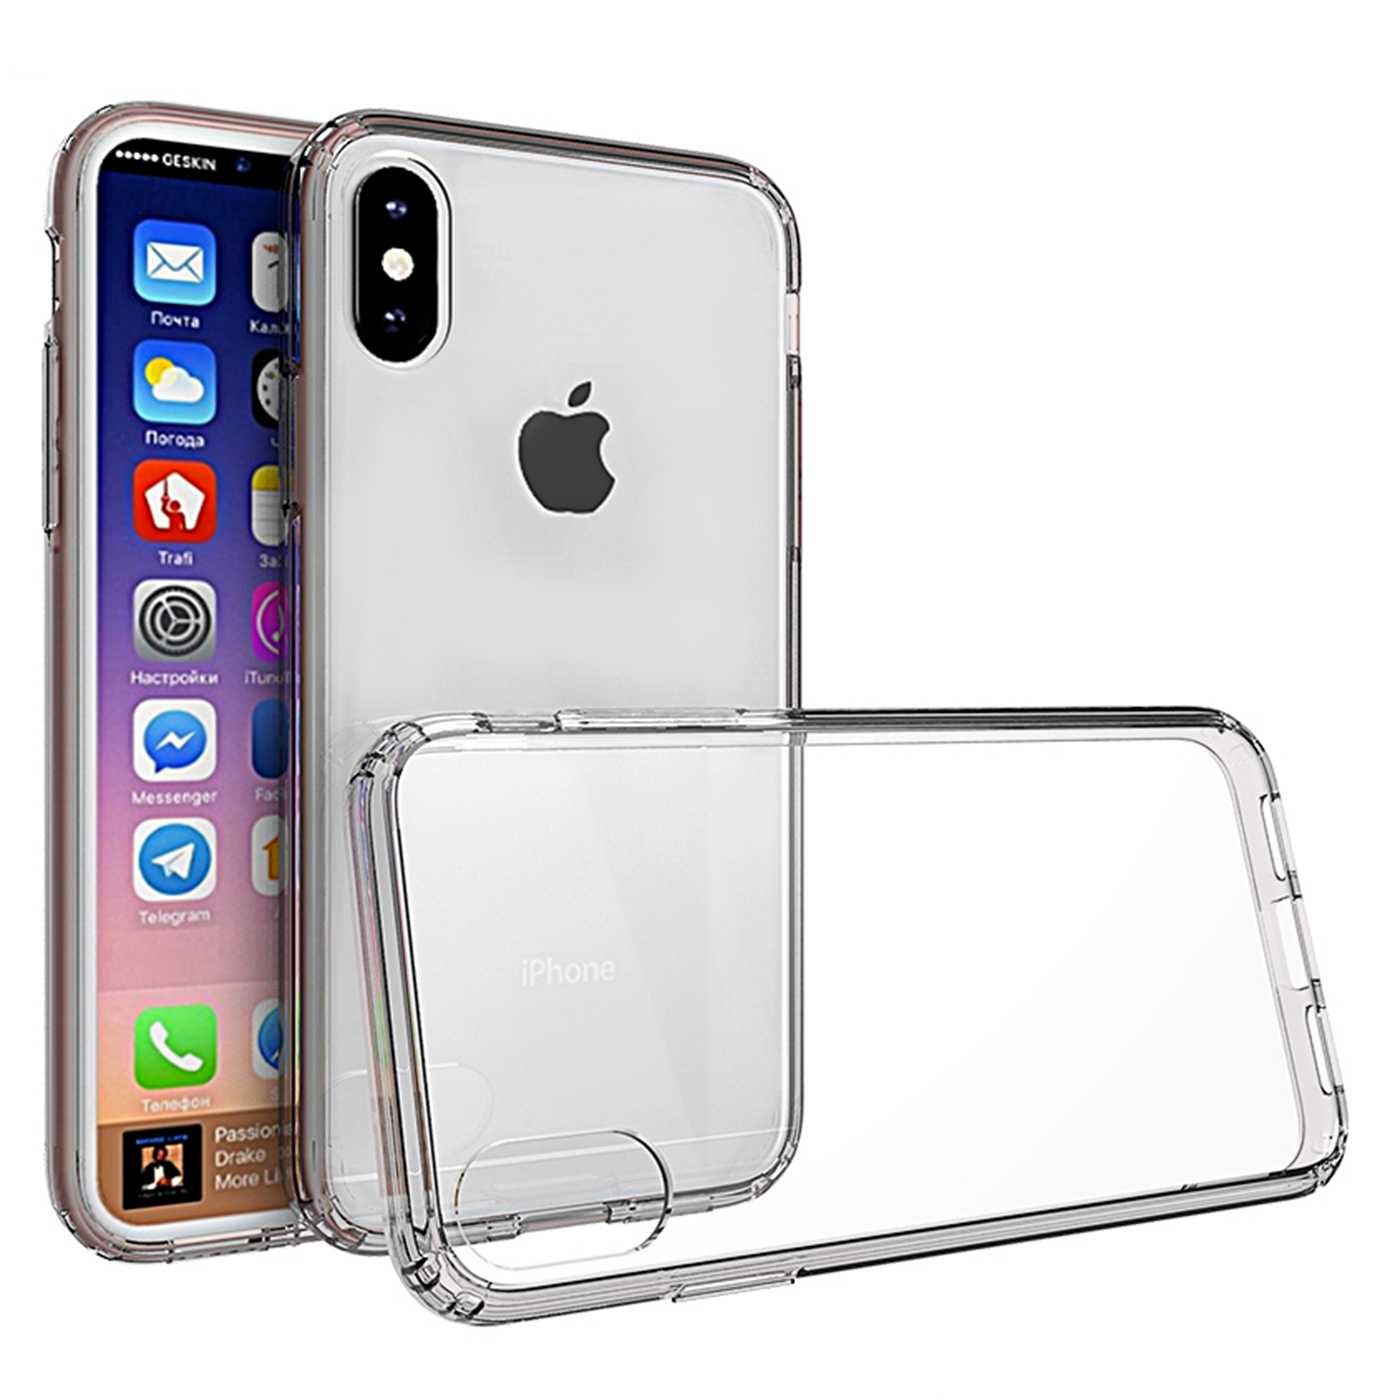 iPhone X Case (5.8'), APPLE IPhone X Case, Torryka Slim Clear anti-scratch Slim Shockproof Hard PC+TPU Bumper Protective Armor Defender Cover for Apple iPhone X (Clear Bumper)